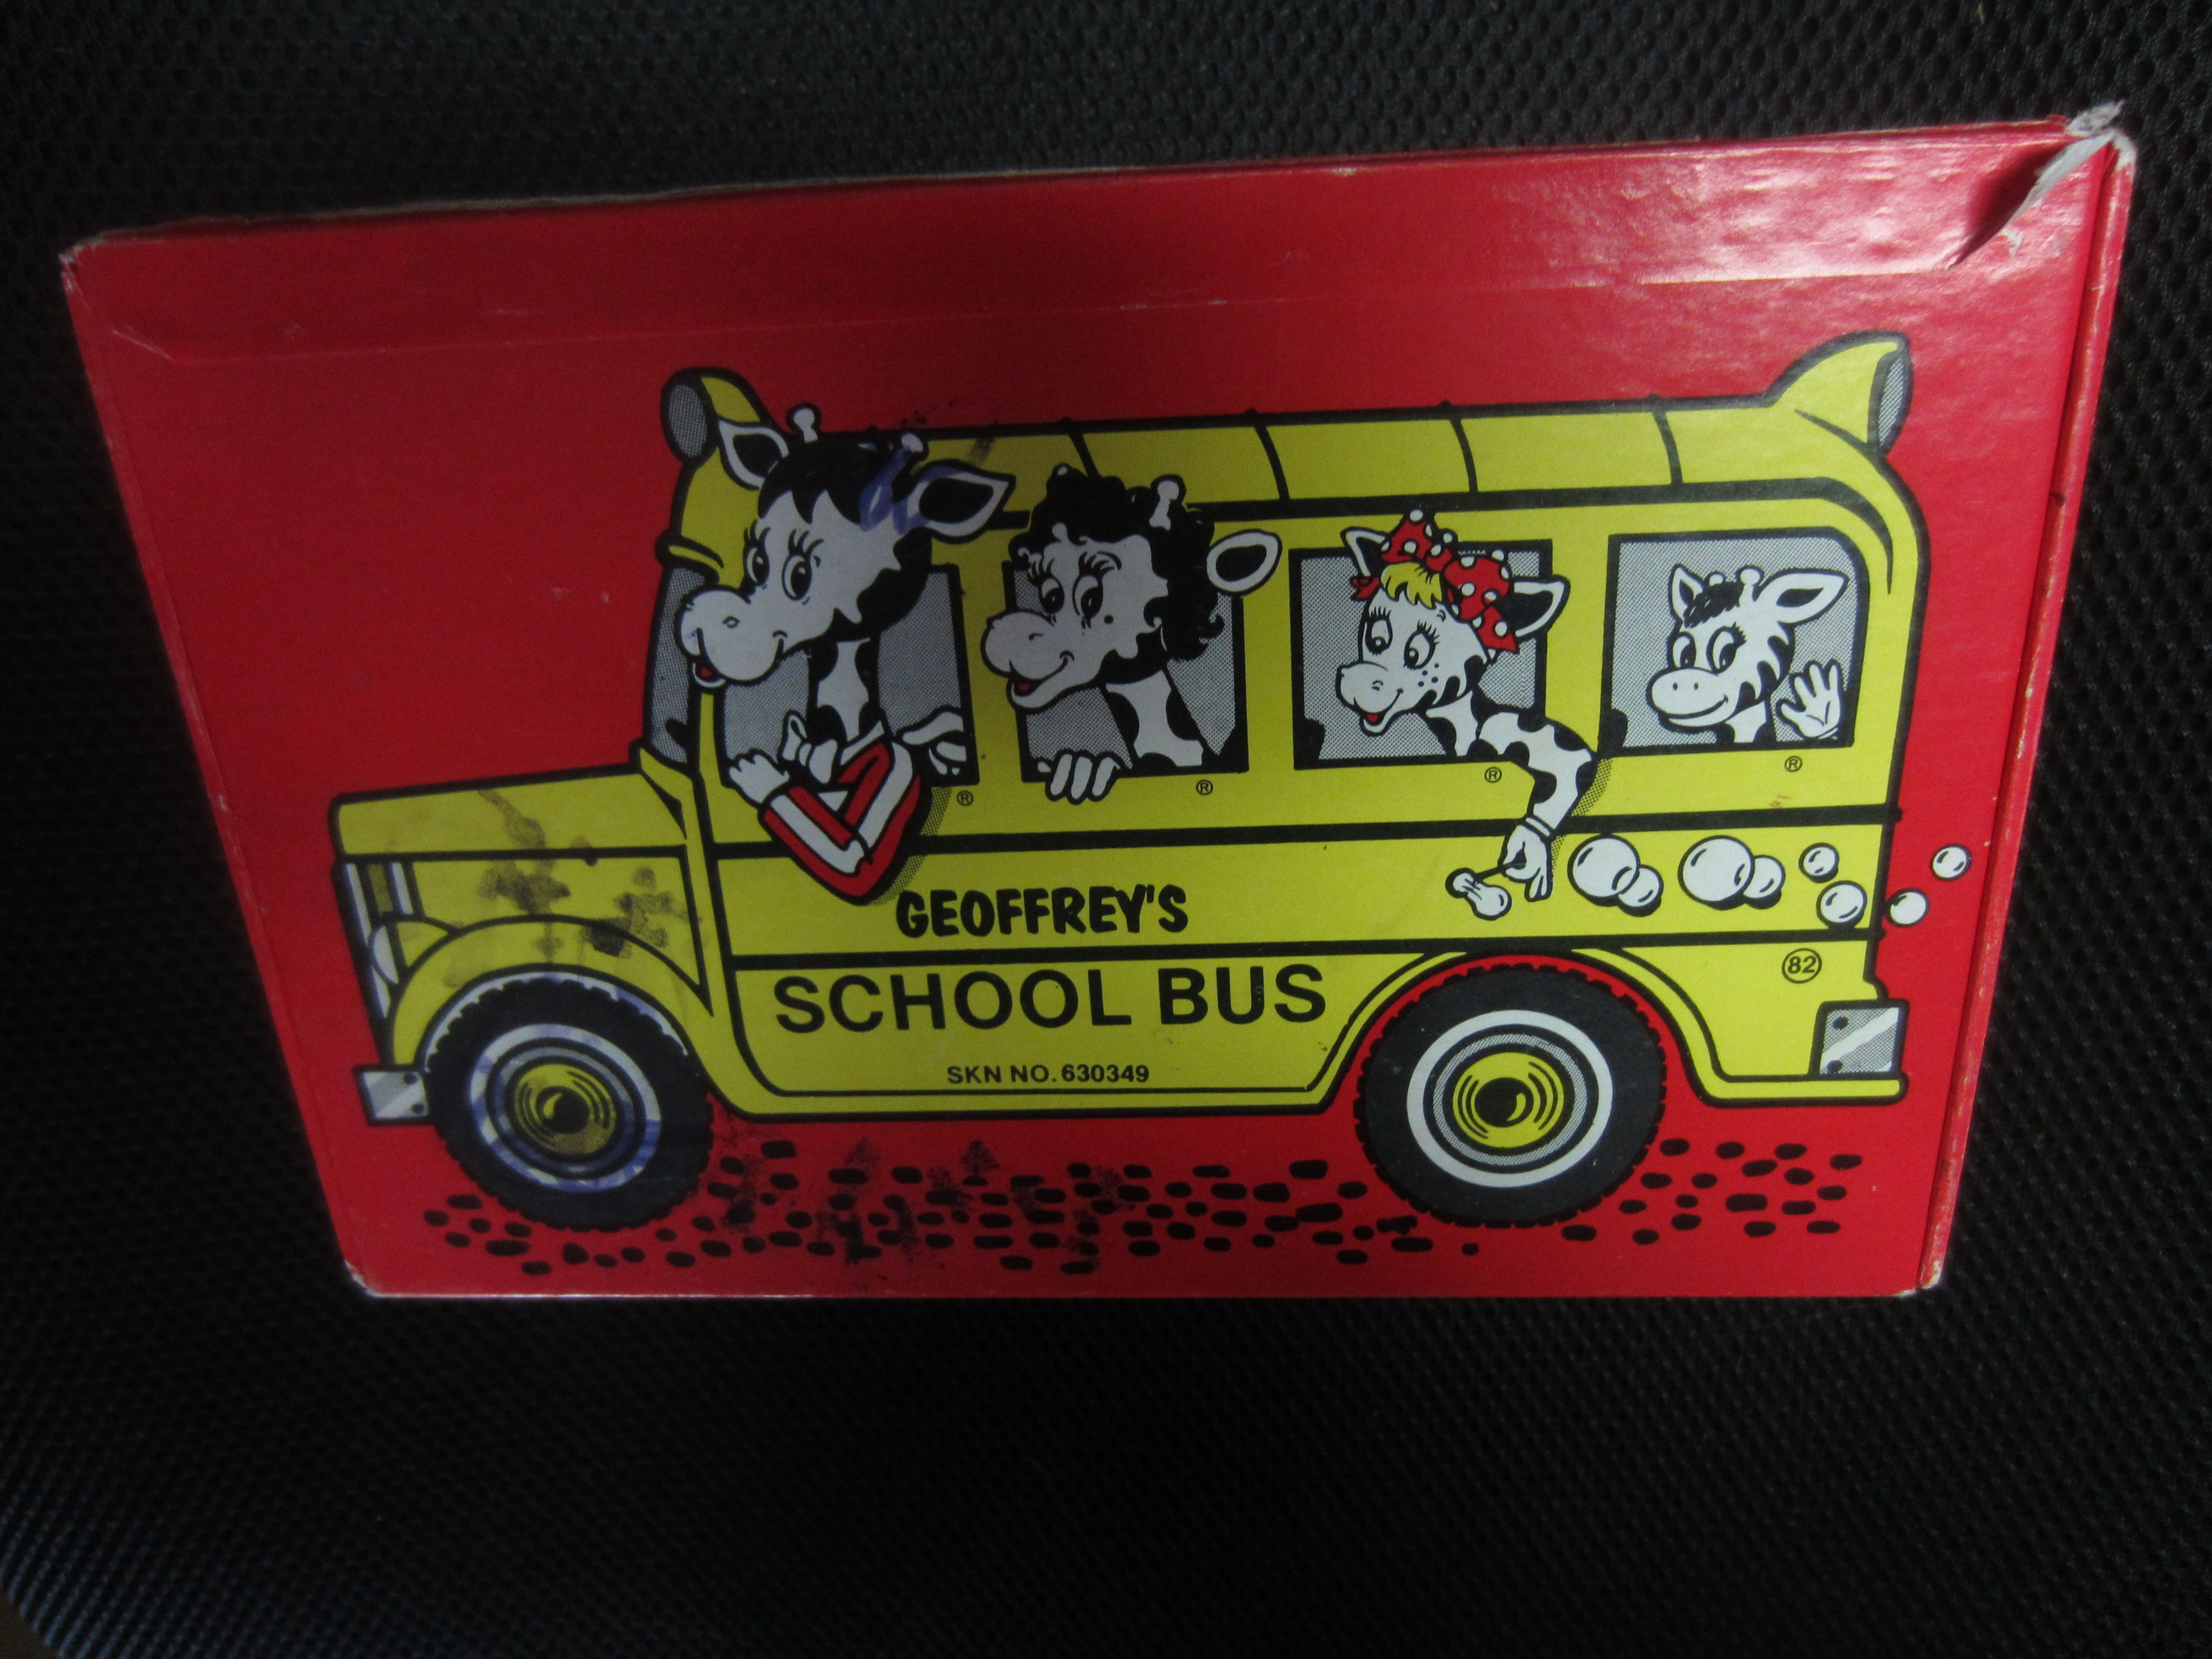 Vintage Toys R Us Geoffreys School Bus Anything Box Giraffe Family